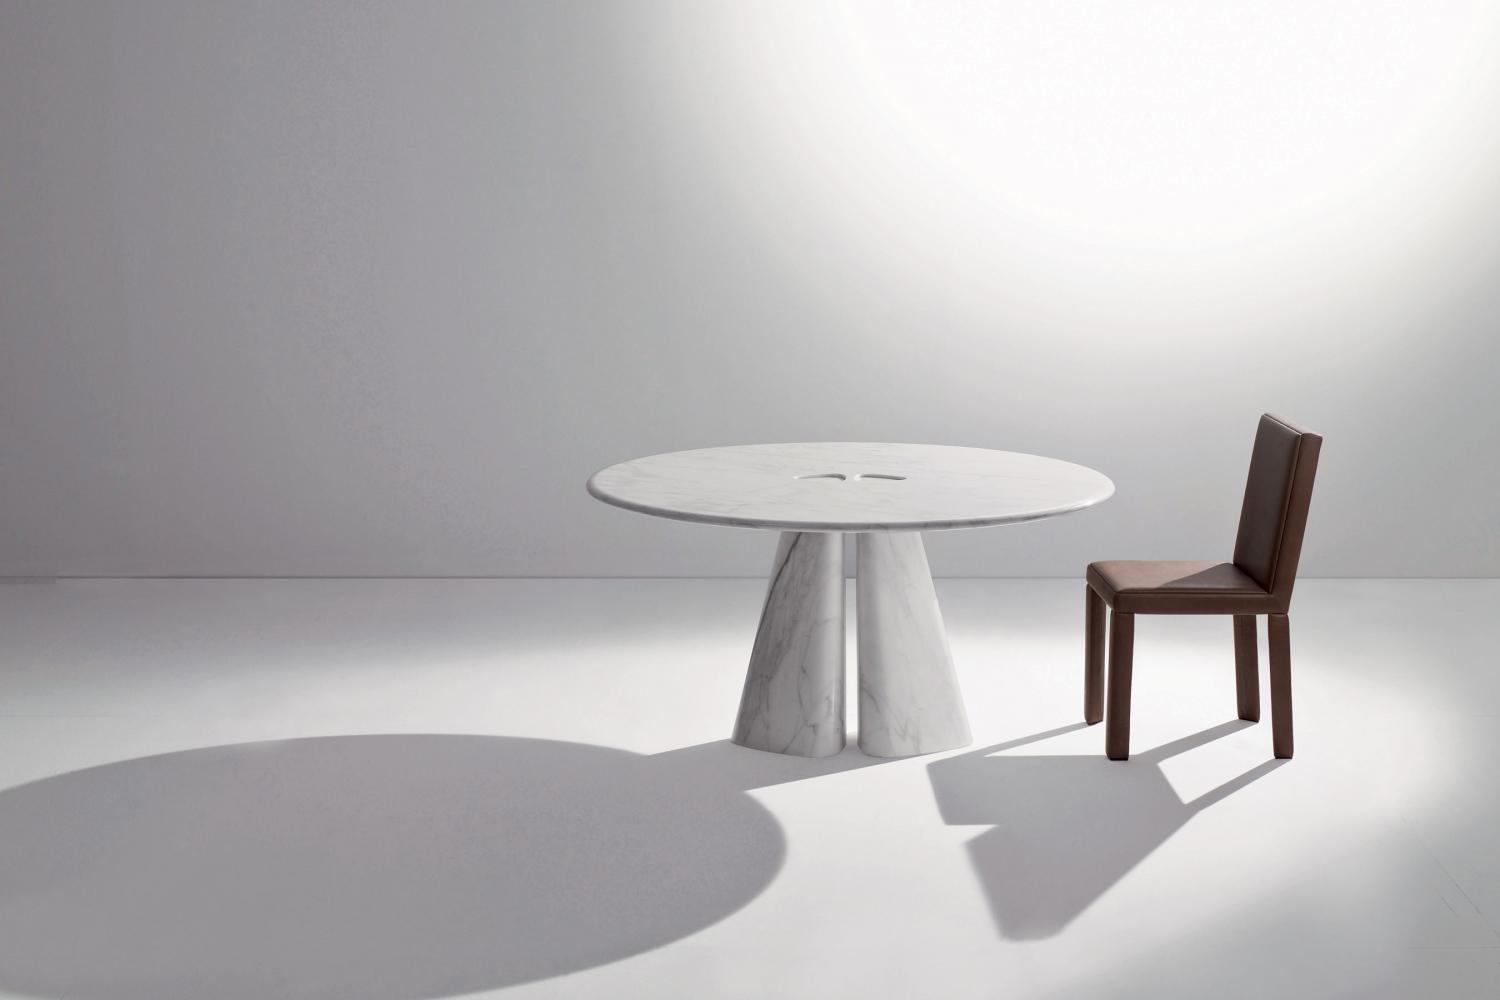 laurameroni luxury rounded table in wood for modern interior design and decor